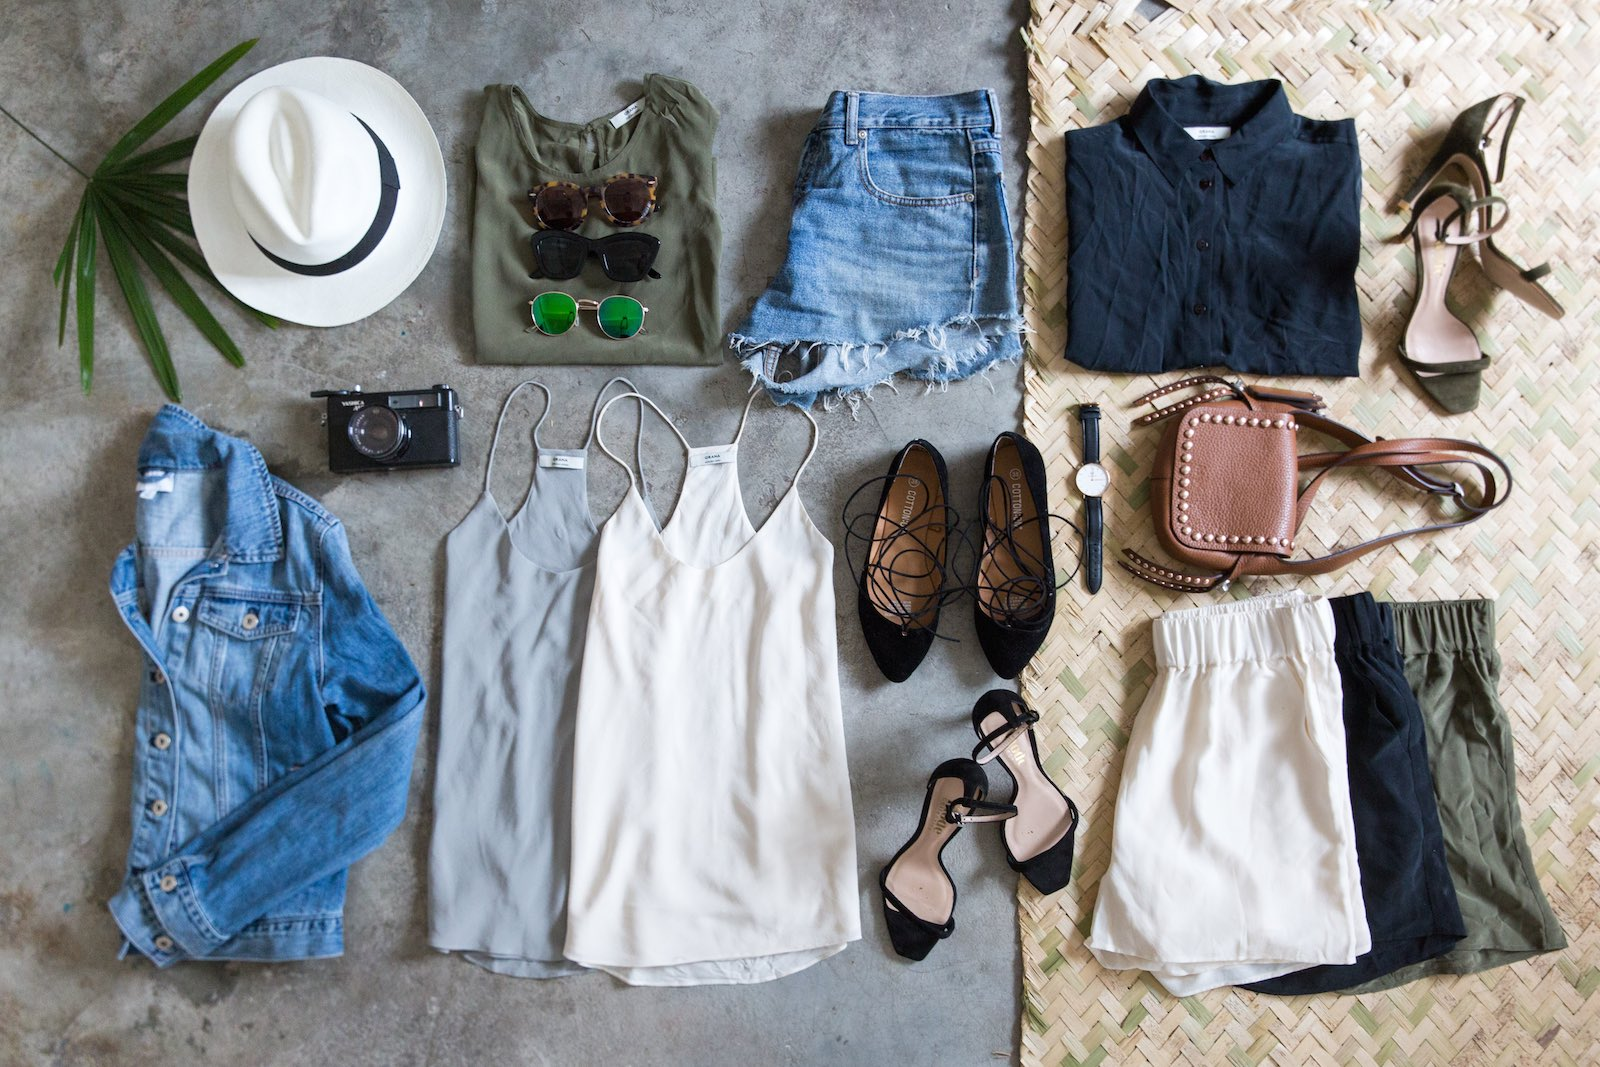 WHAT TO PACK FOR A 4 DAY TRIP IN SUMMER